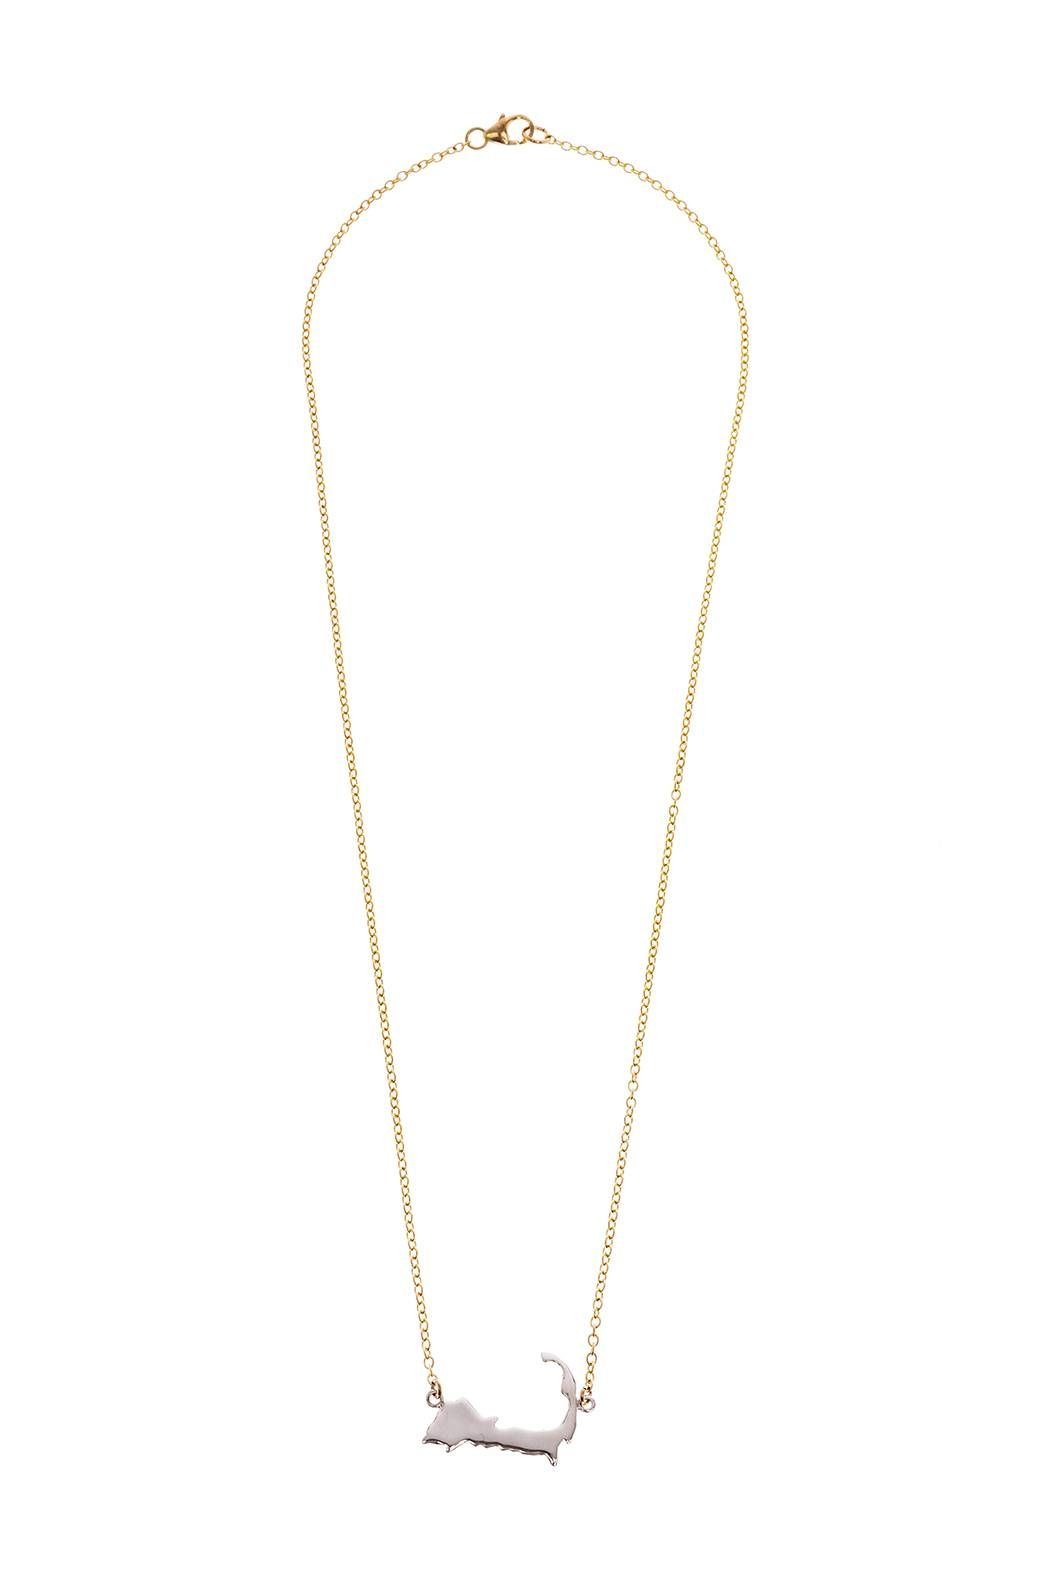 Jewelry Studio Of Wellfleet Two Toned Silhouette Necklace